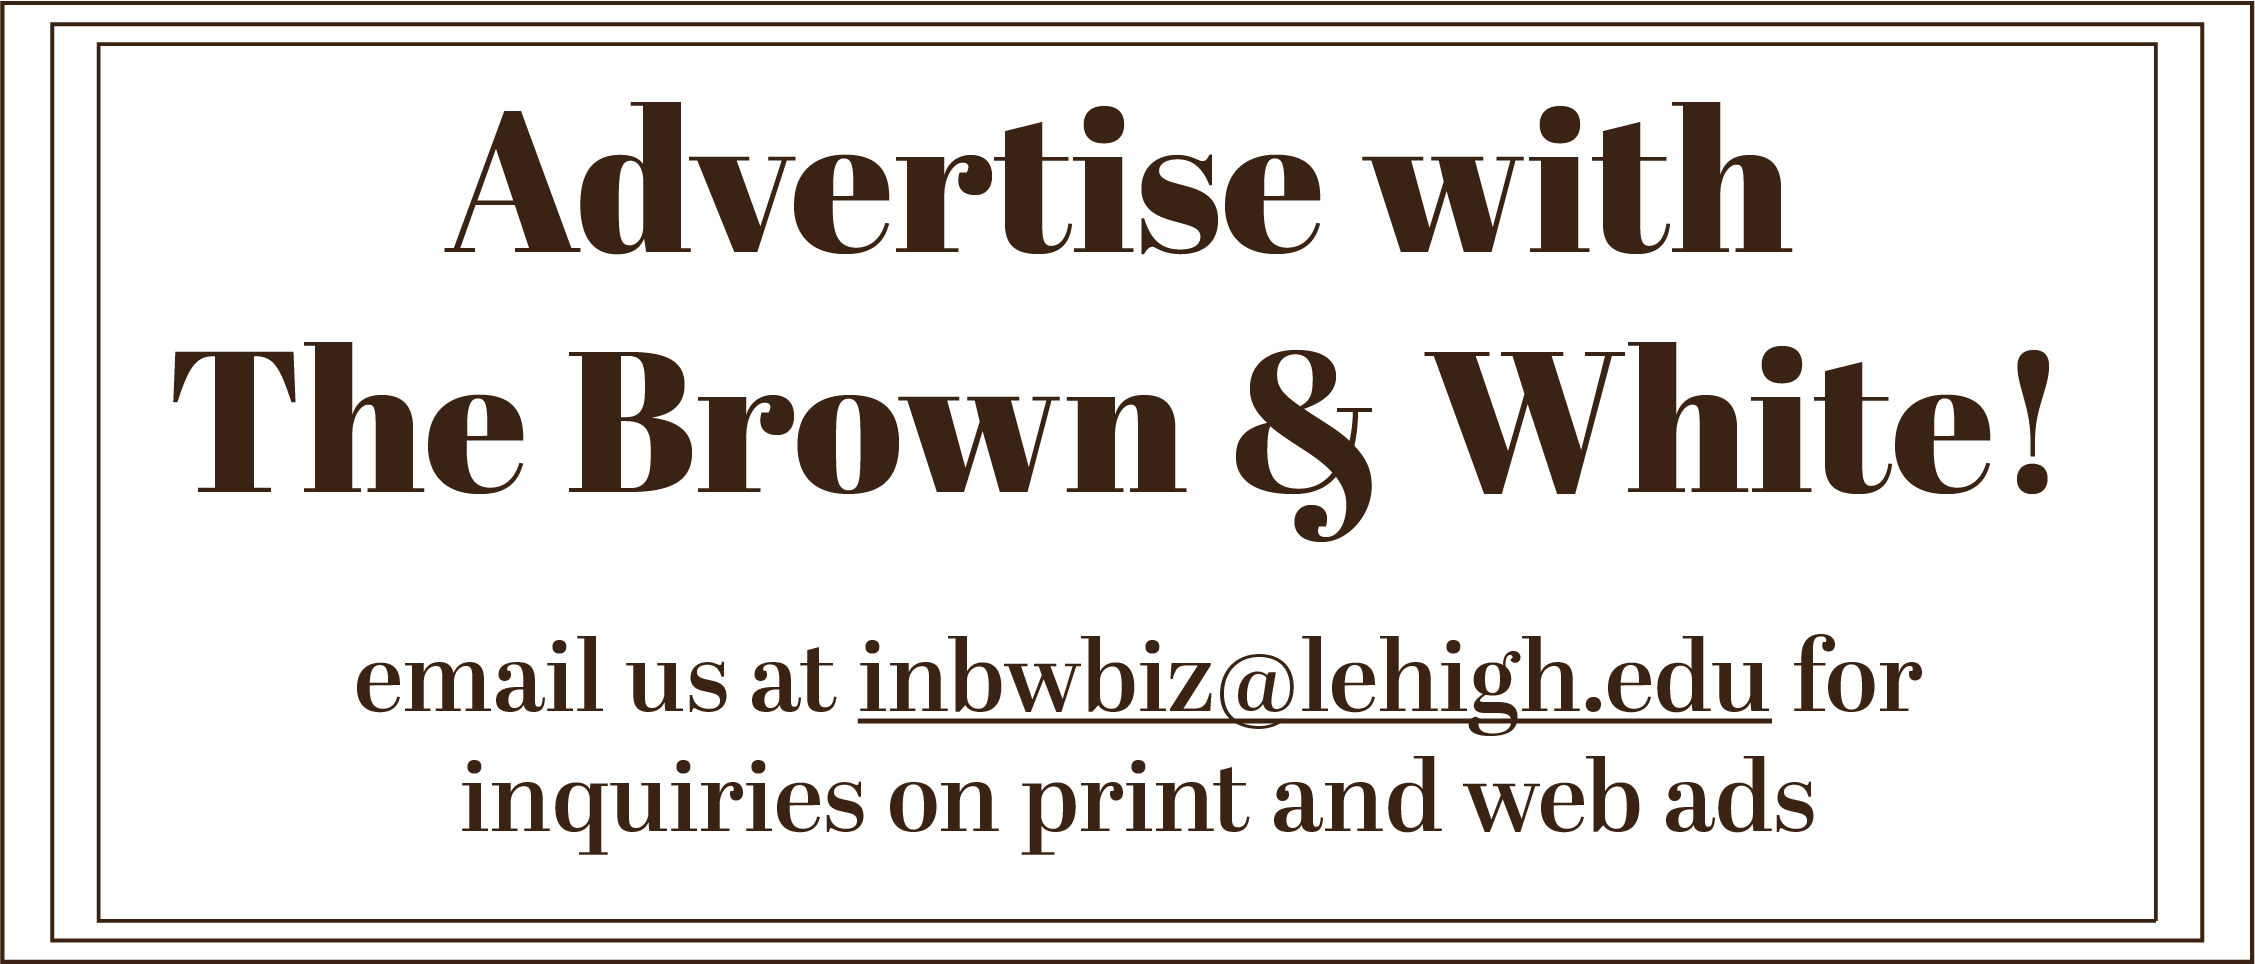 Advertise with the Brown & White. Email us at inbwbiz@lehigh.edu